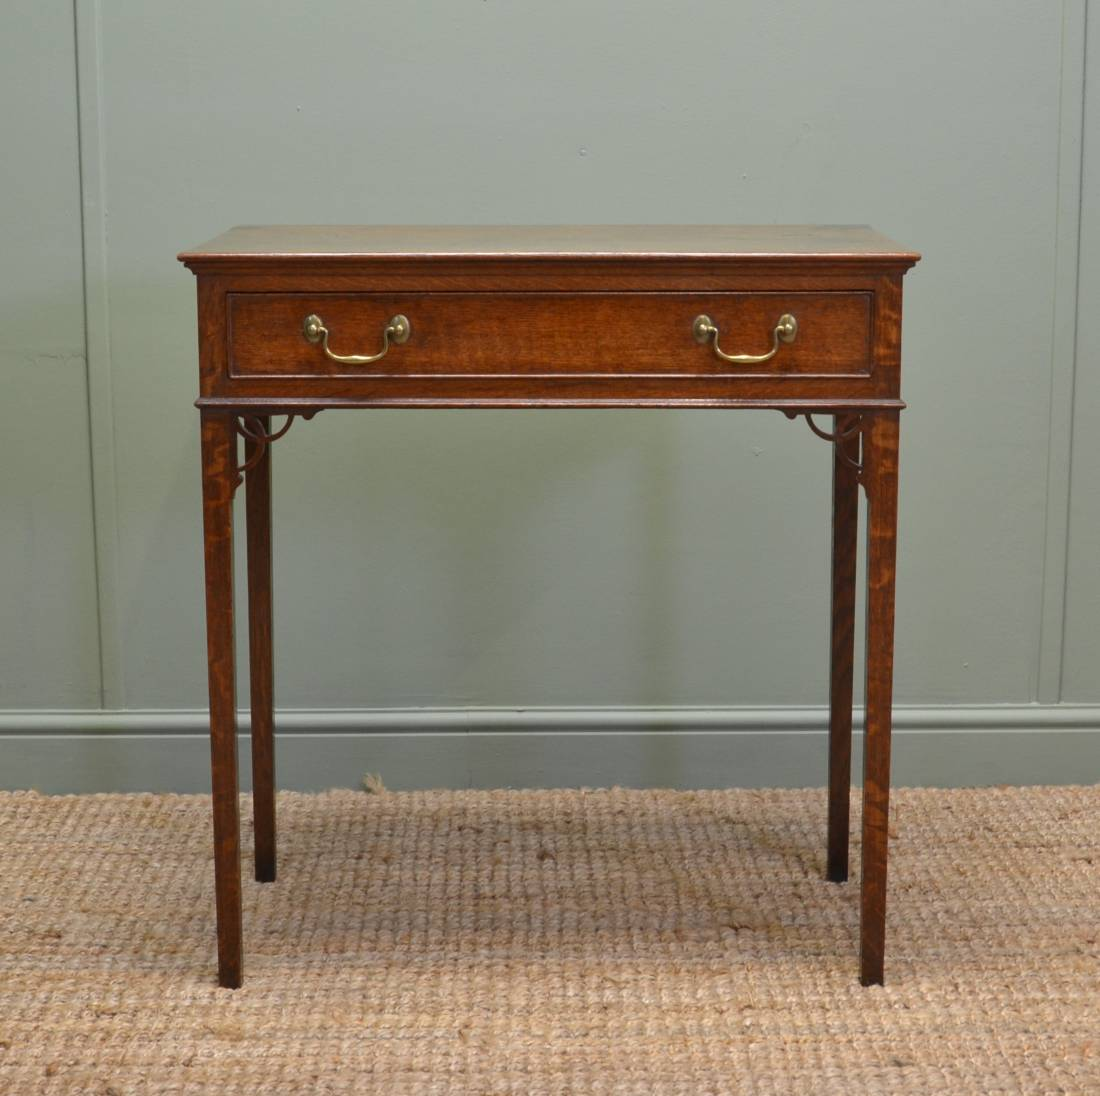 Oak Antique Telephone Table / Hall Table full of charm and character.